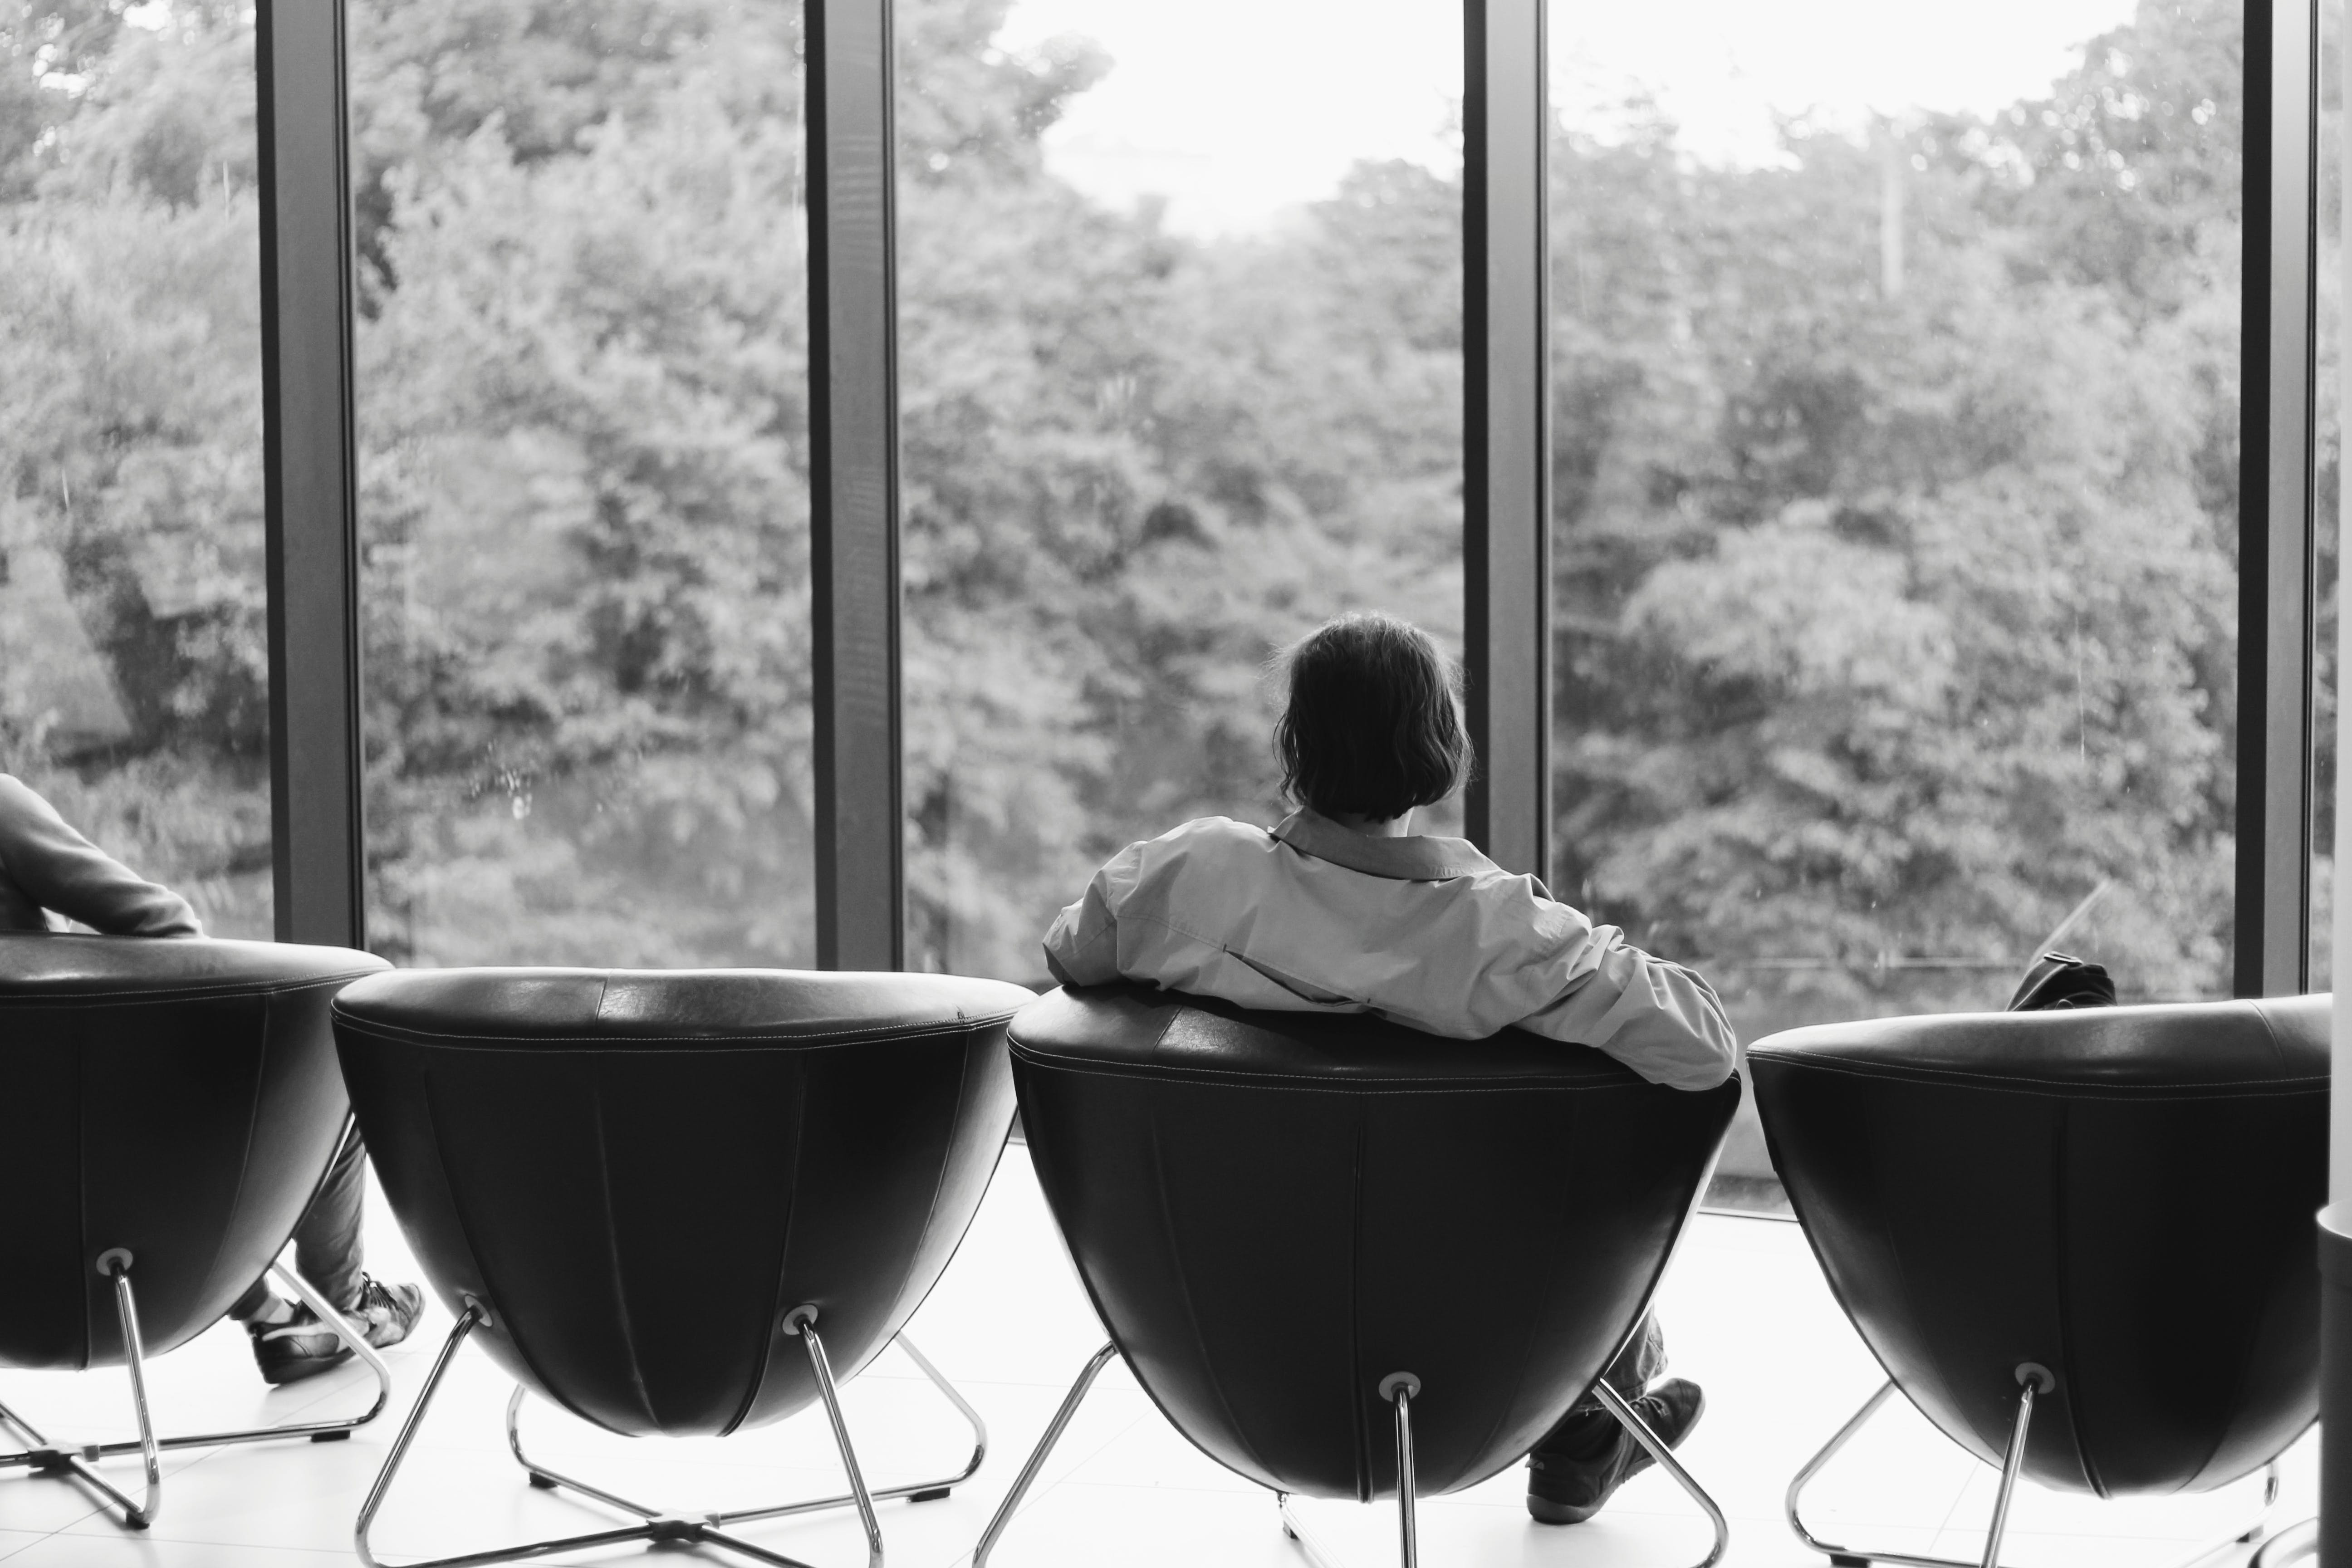 Grayscale Photo of Person Sitting on Leather Chair Looking in Front of Clear Glass Door